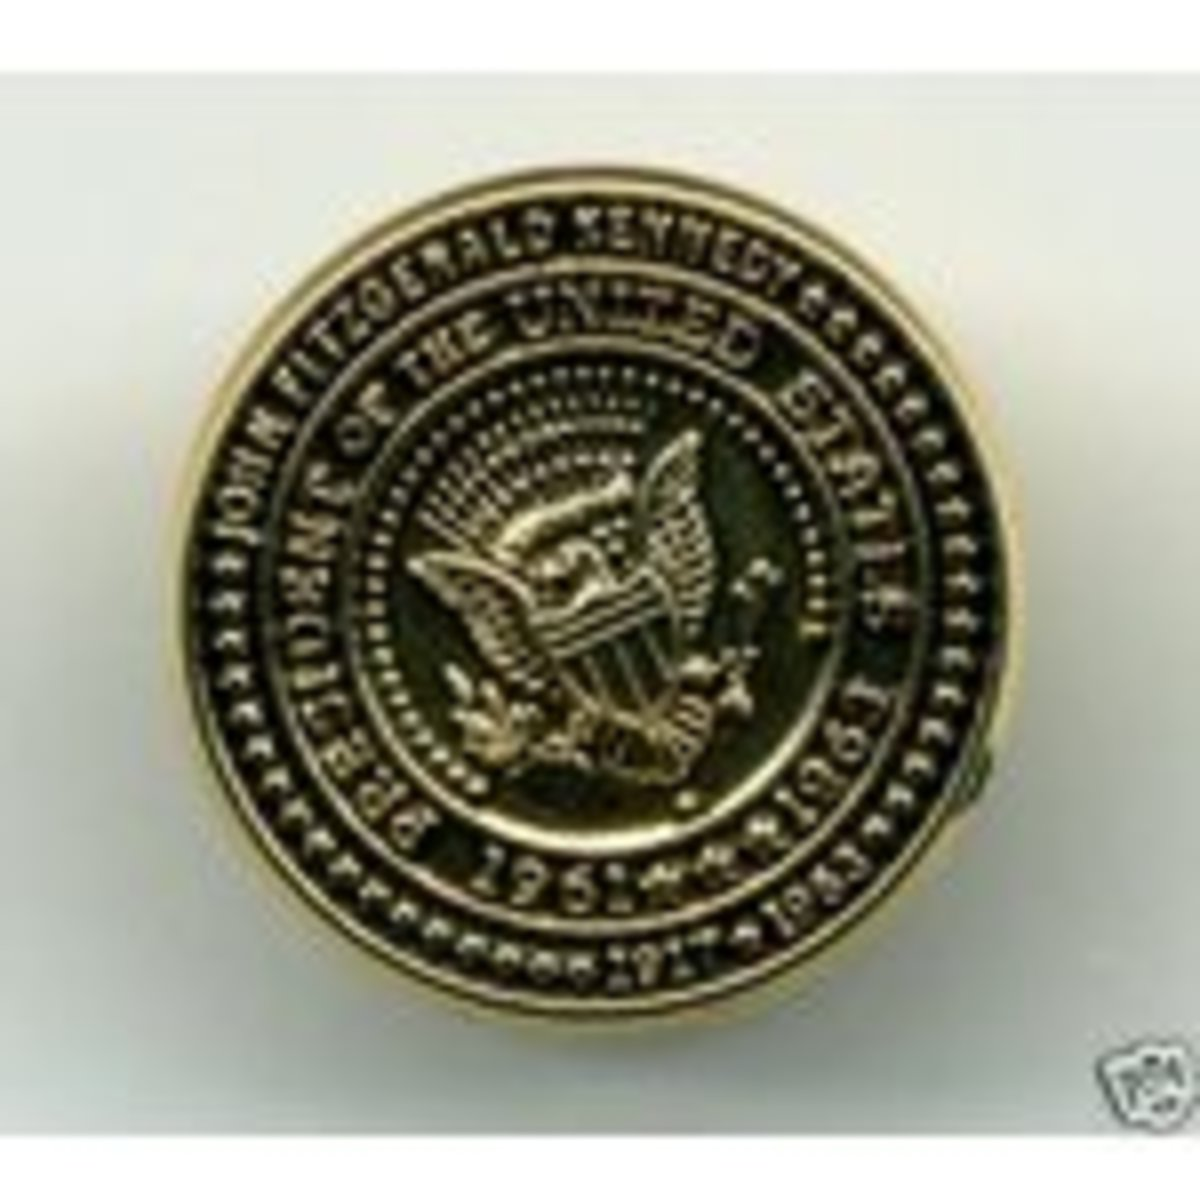 United States of America cuff link 1963 - John F Kennedy - Eagles and Stars